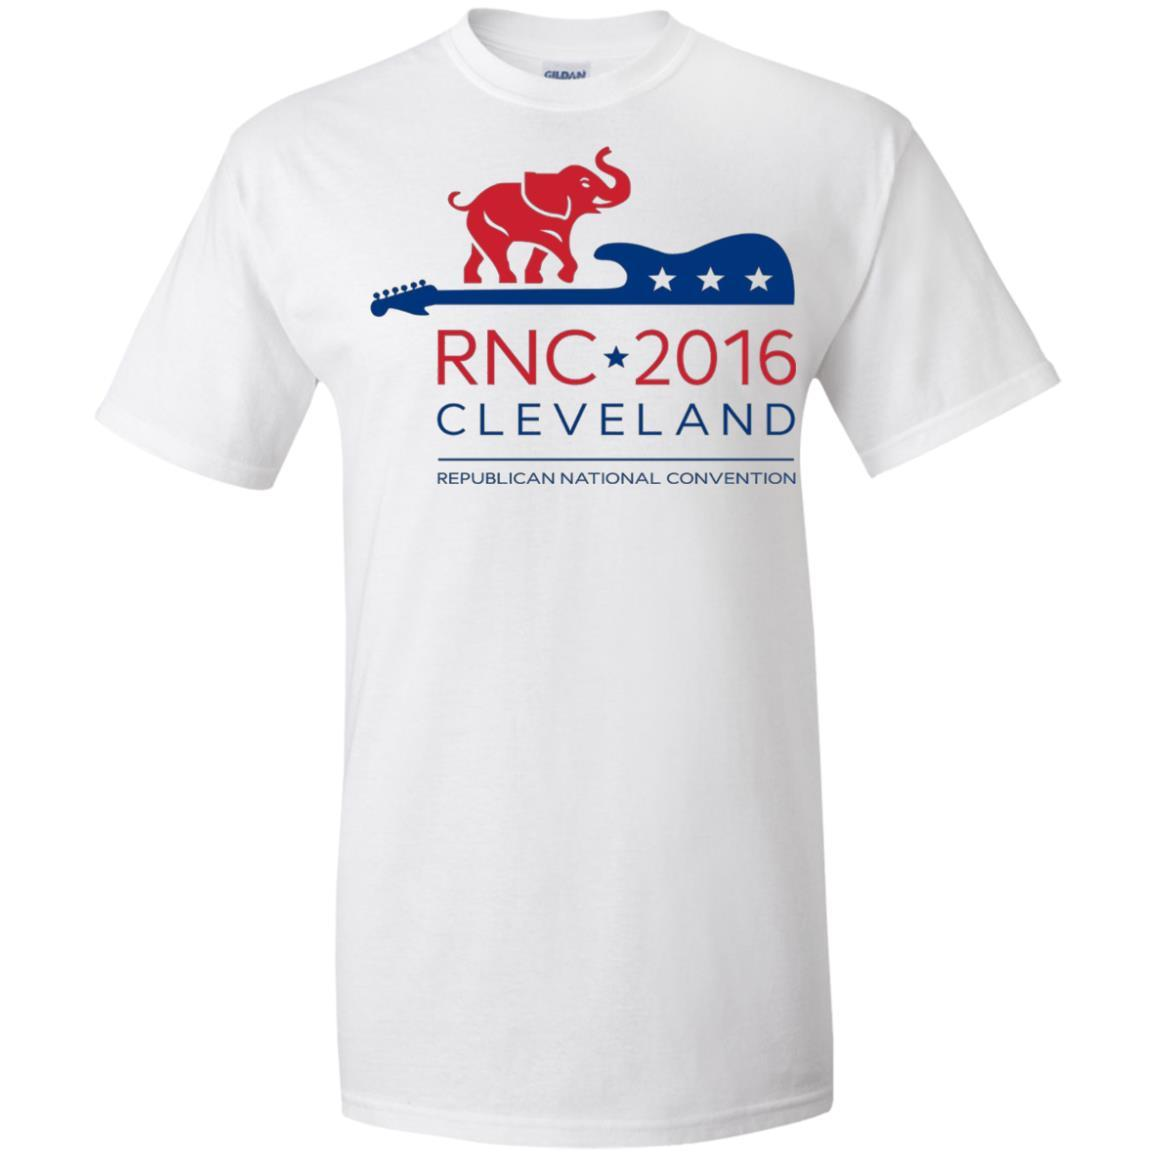 RNC CLE T Shirt – Cleveland Republican National Convention – Tall T-Shirt